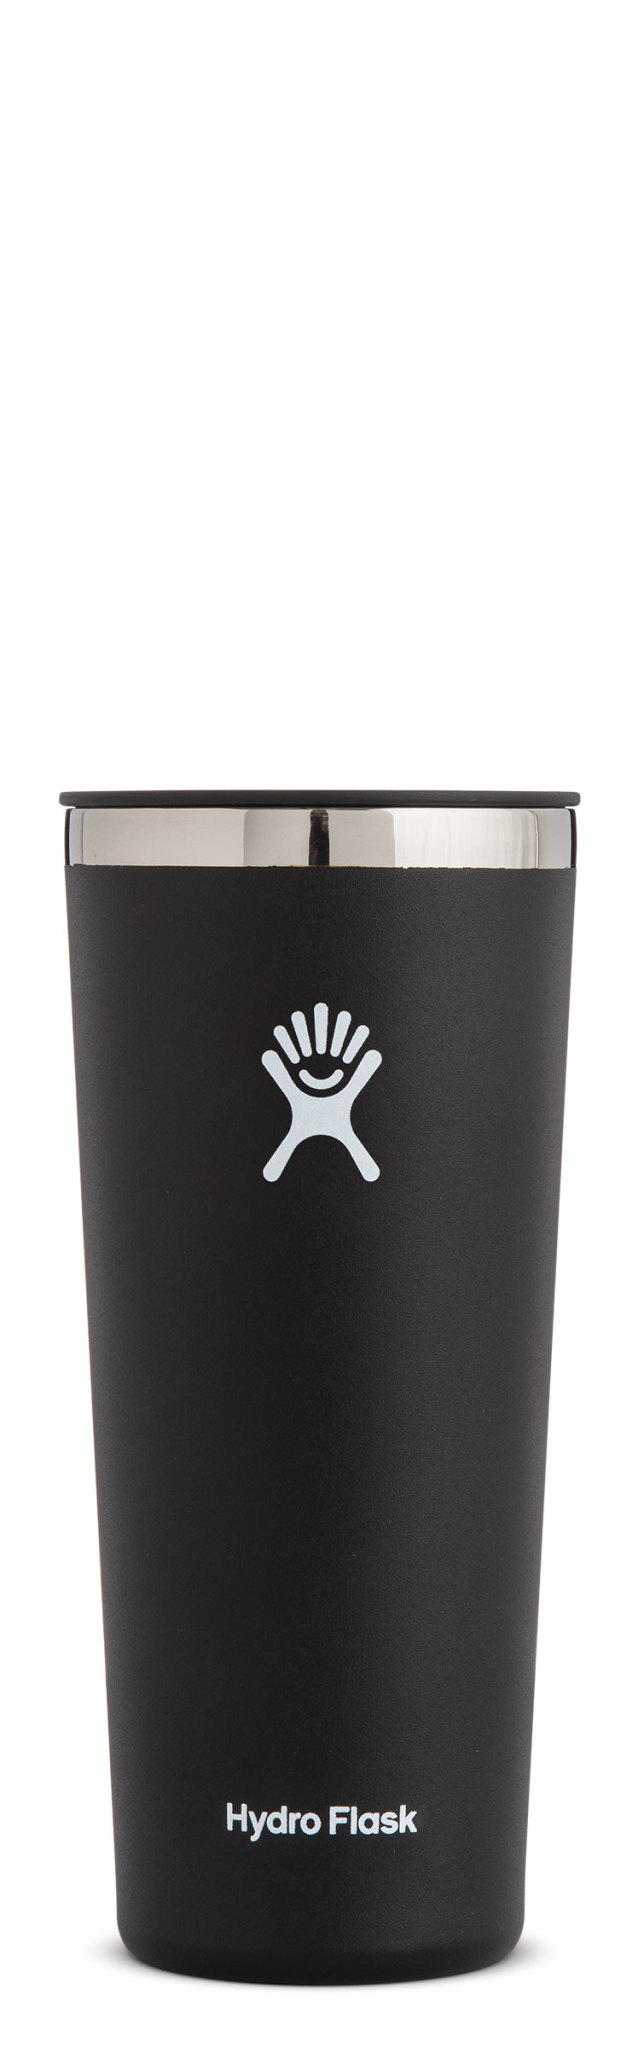 Hydro Flask 22oz Tumbler-2